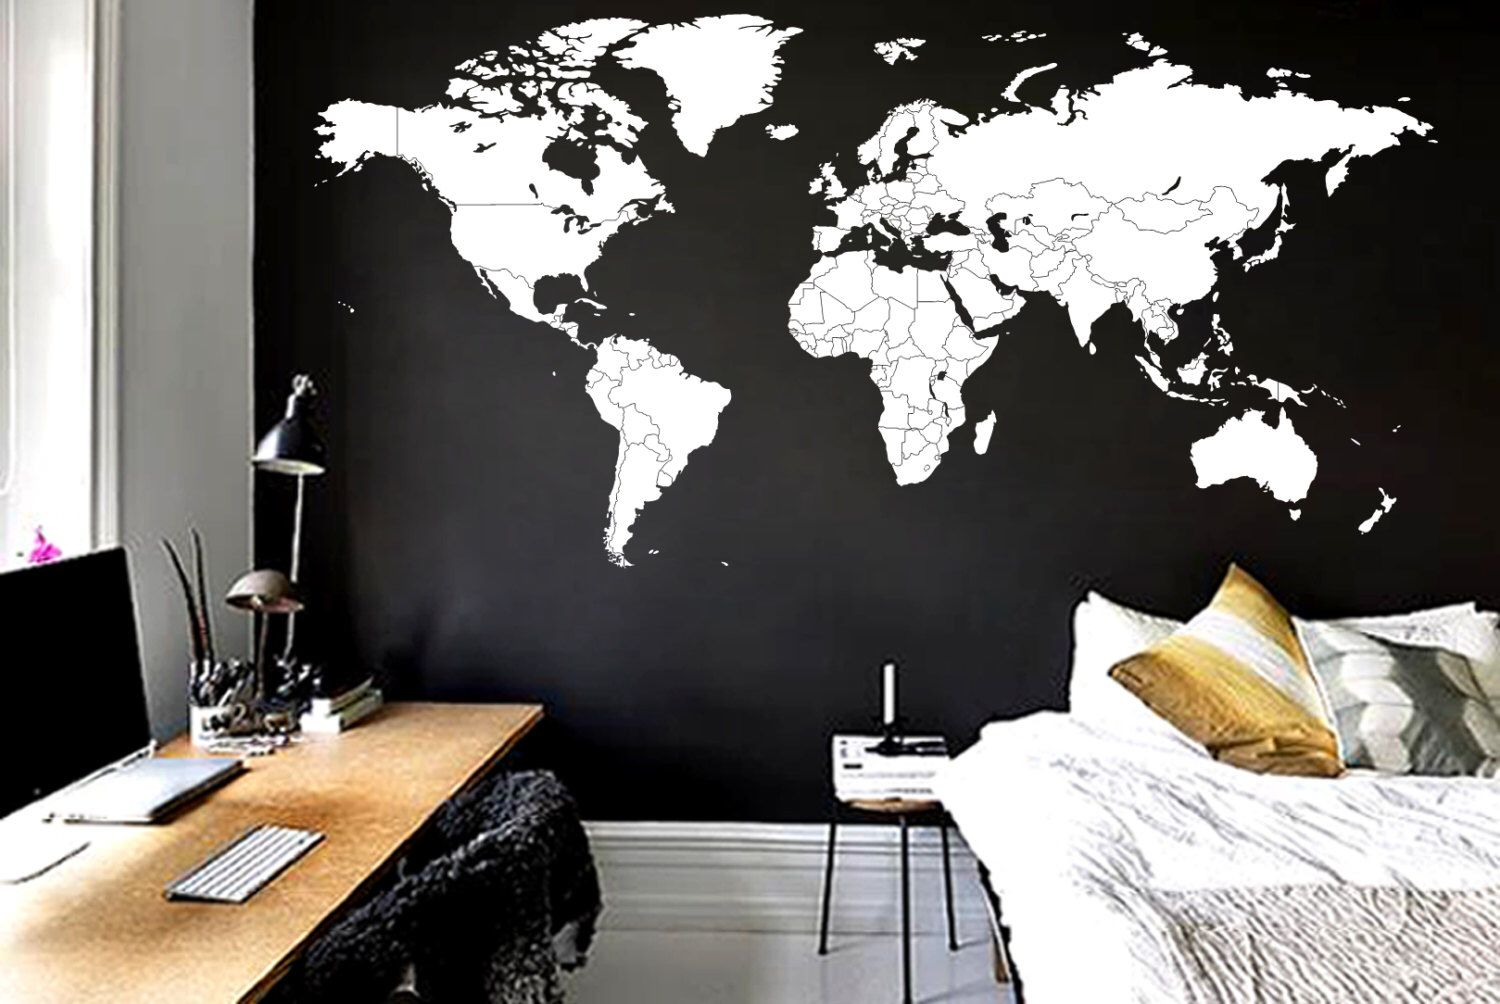 11 feet w outline countries world map decal by worldmaps on etsy 11 feet w outline countries world map decal by worldmaps on etsy https gumiabroncs Image collections